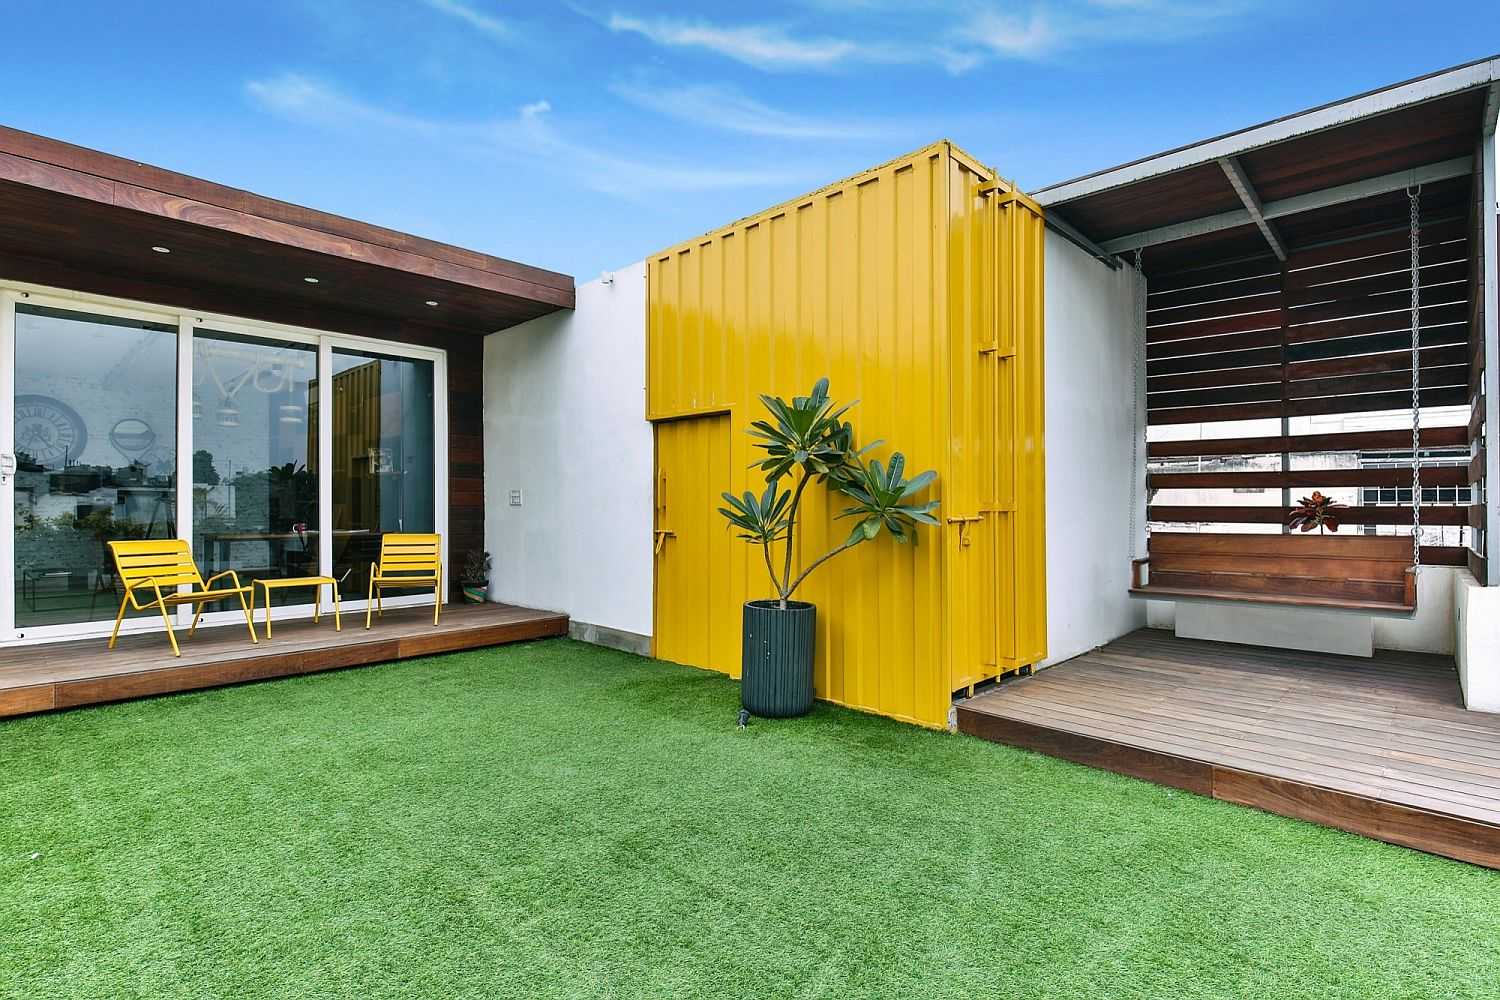 Yellow adds a sense of color and style to the terrace addition